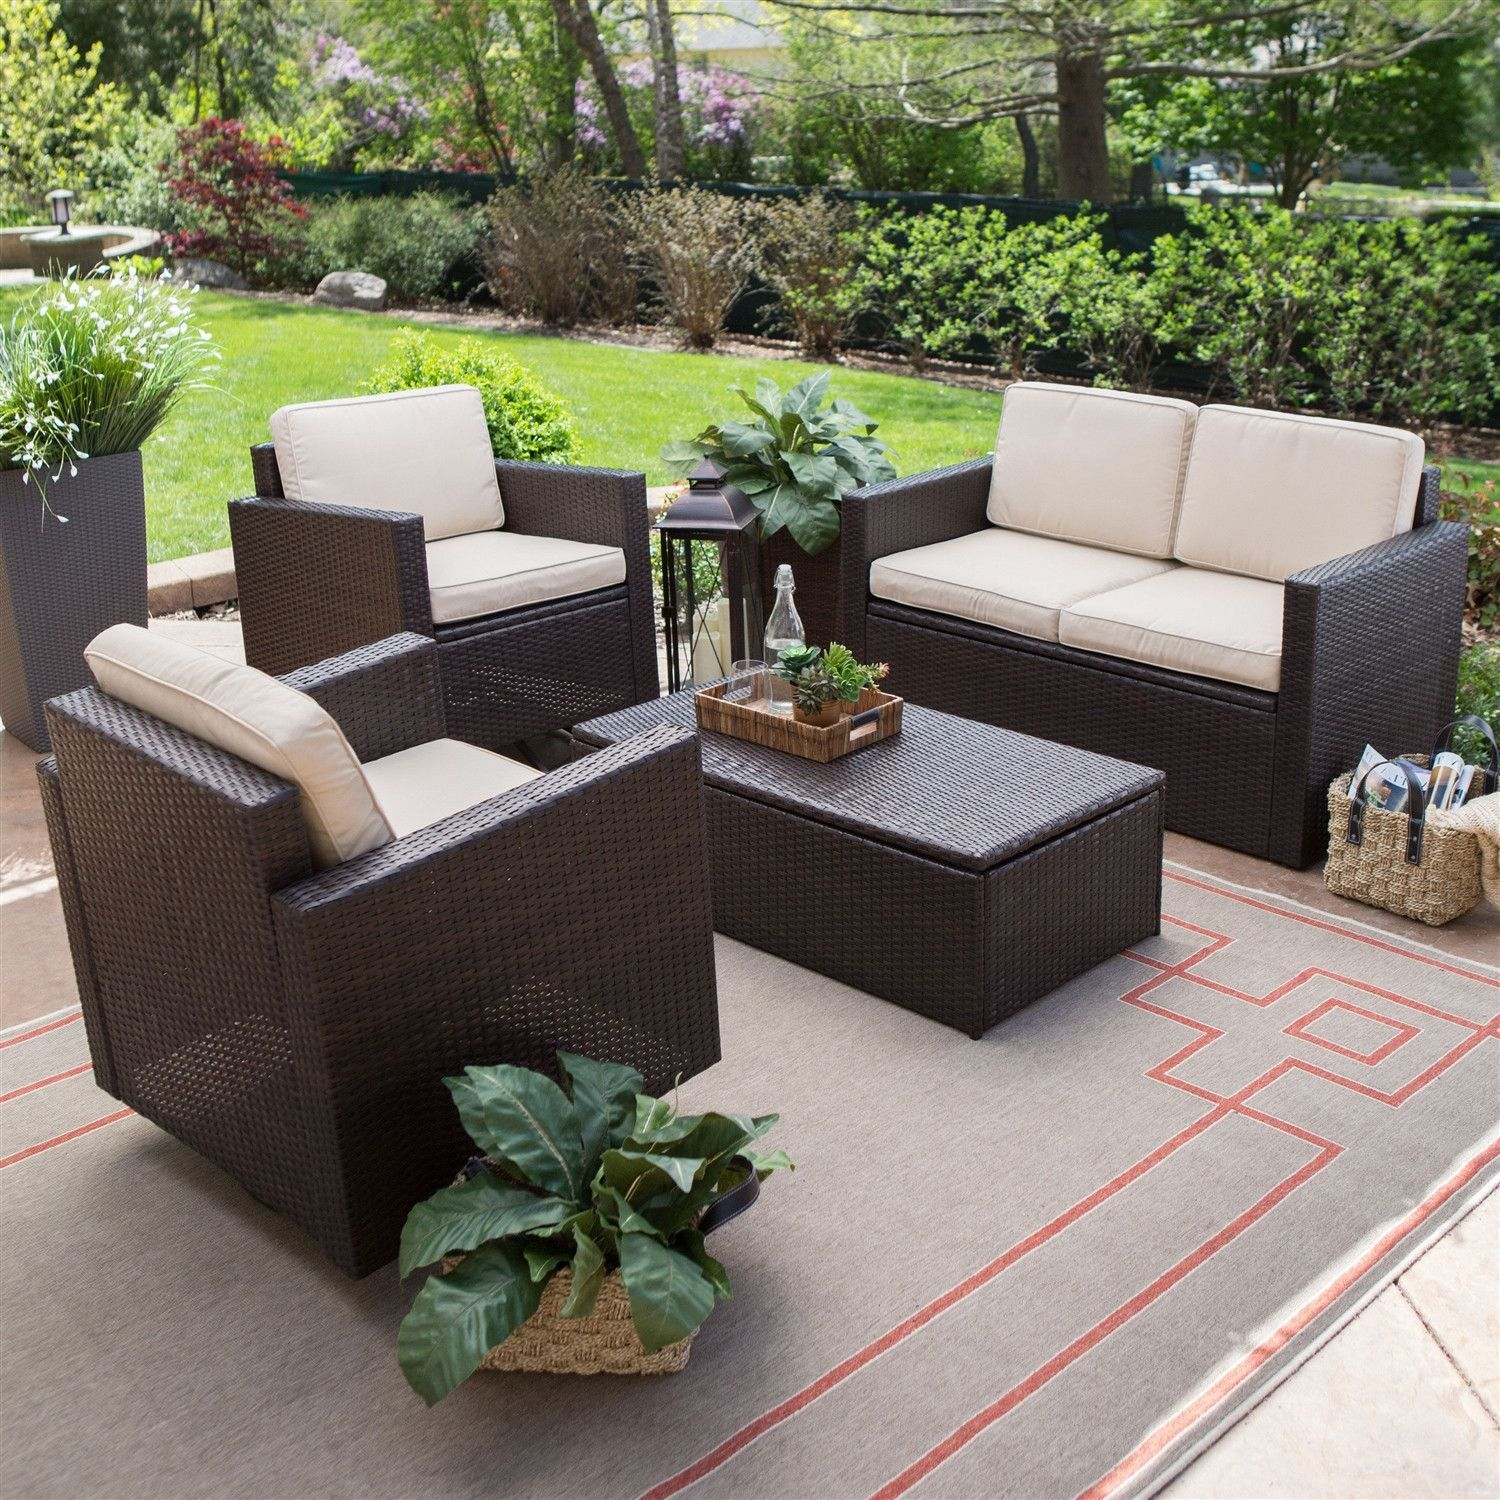 outdoor resin wicker patio furniture sets Outdoor Wicker Resin 4-Piece Patio Furniture Dinning Set